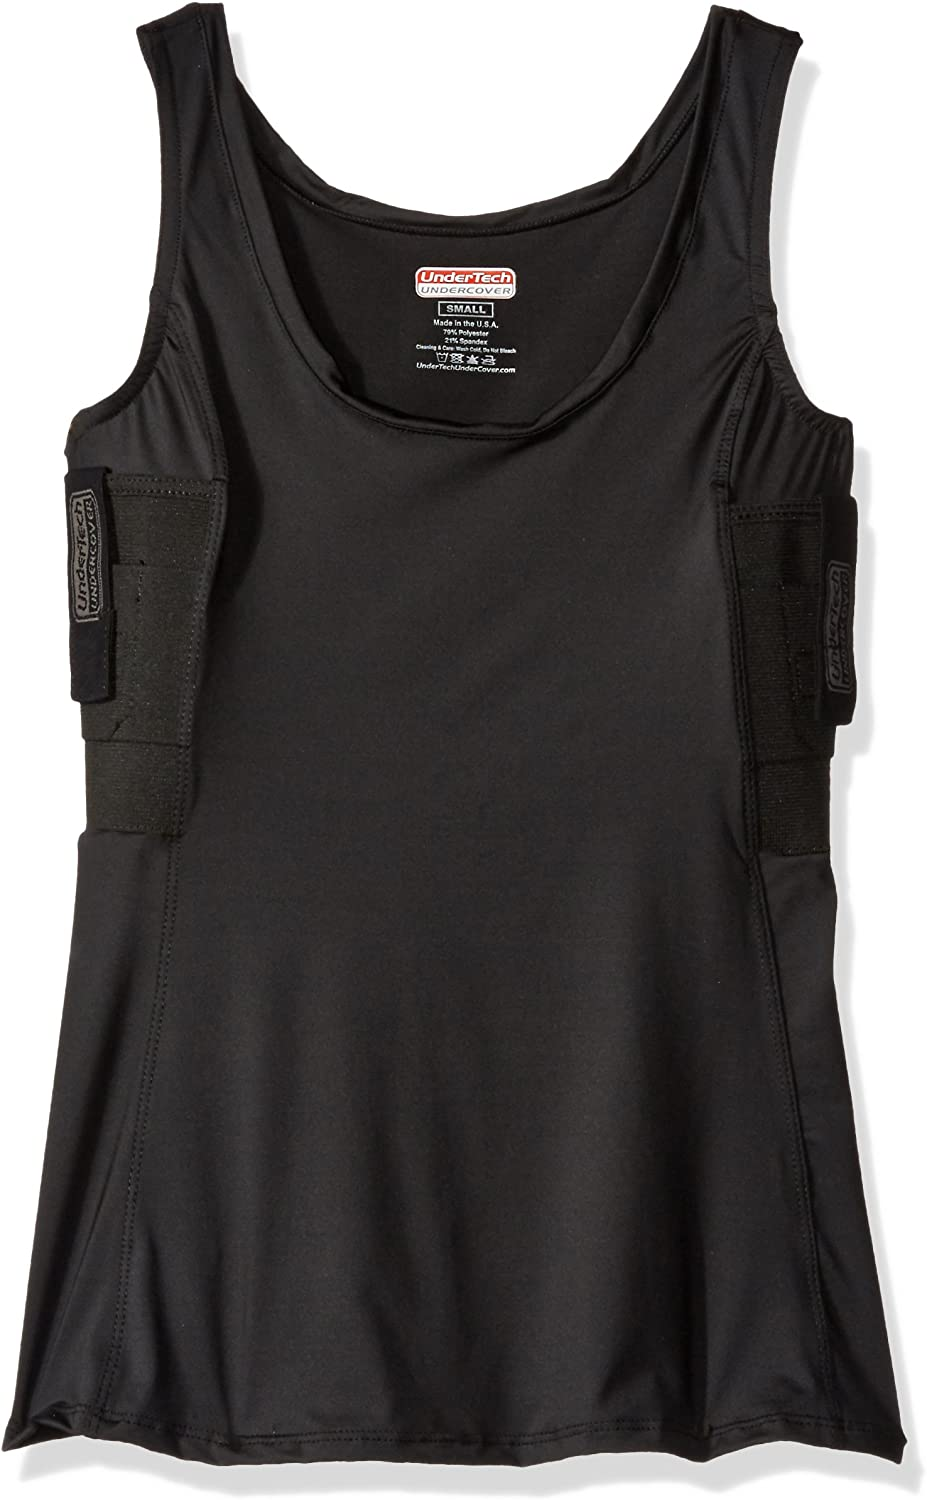 UnderTech Undercover Women's Concealment Tank Top